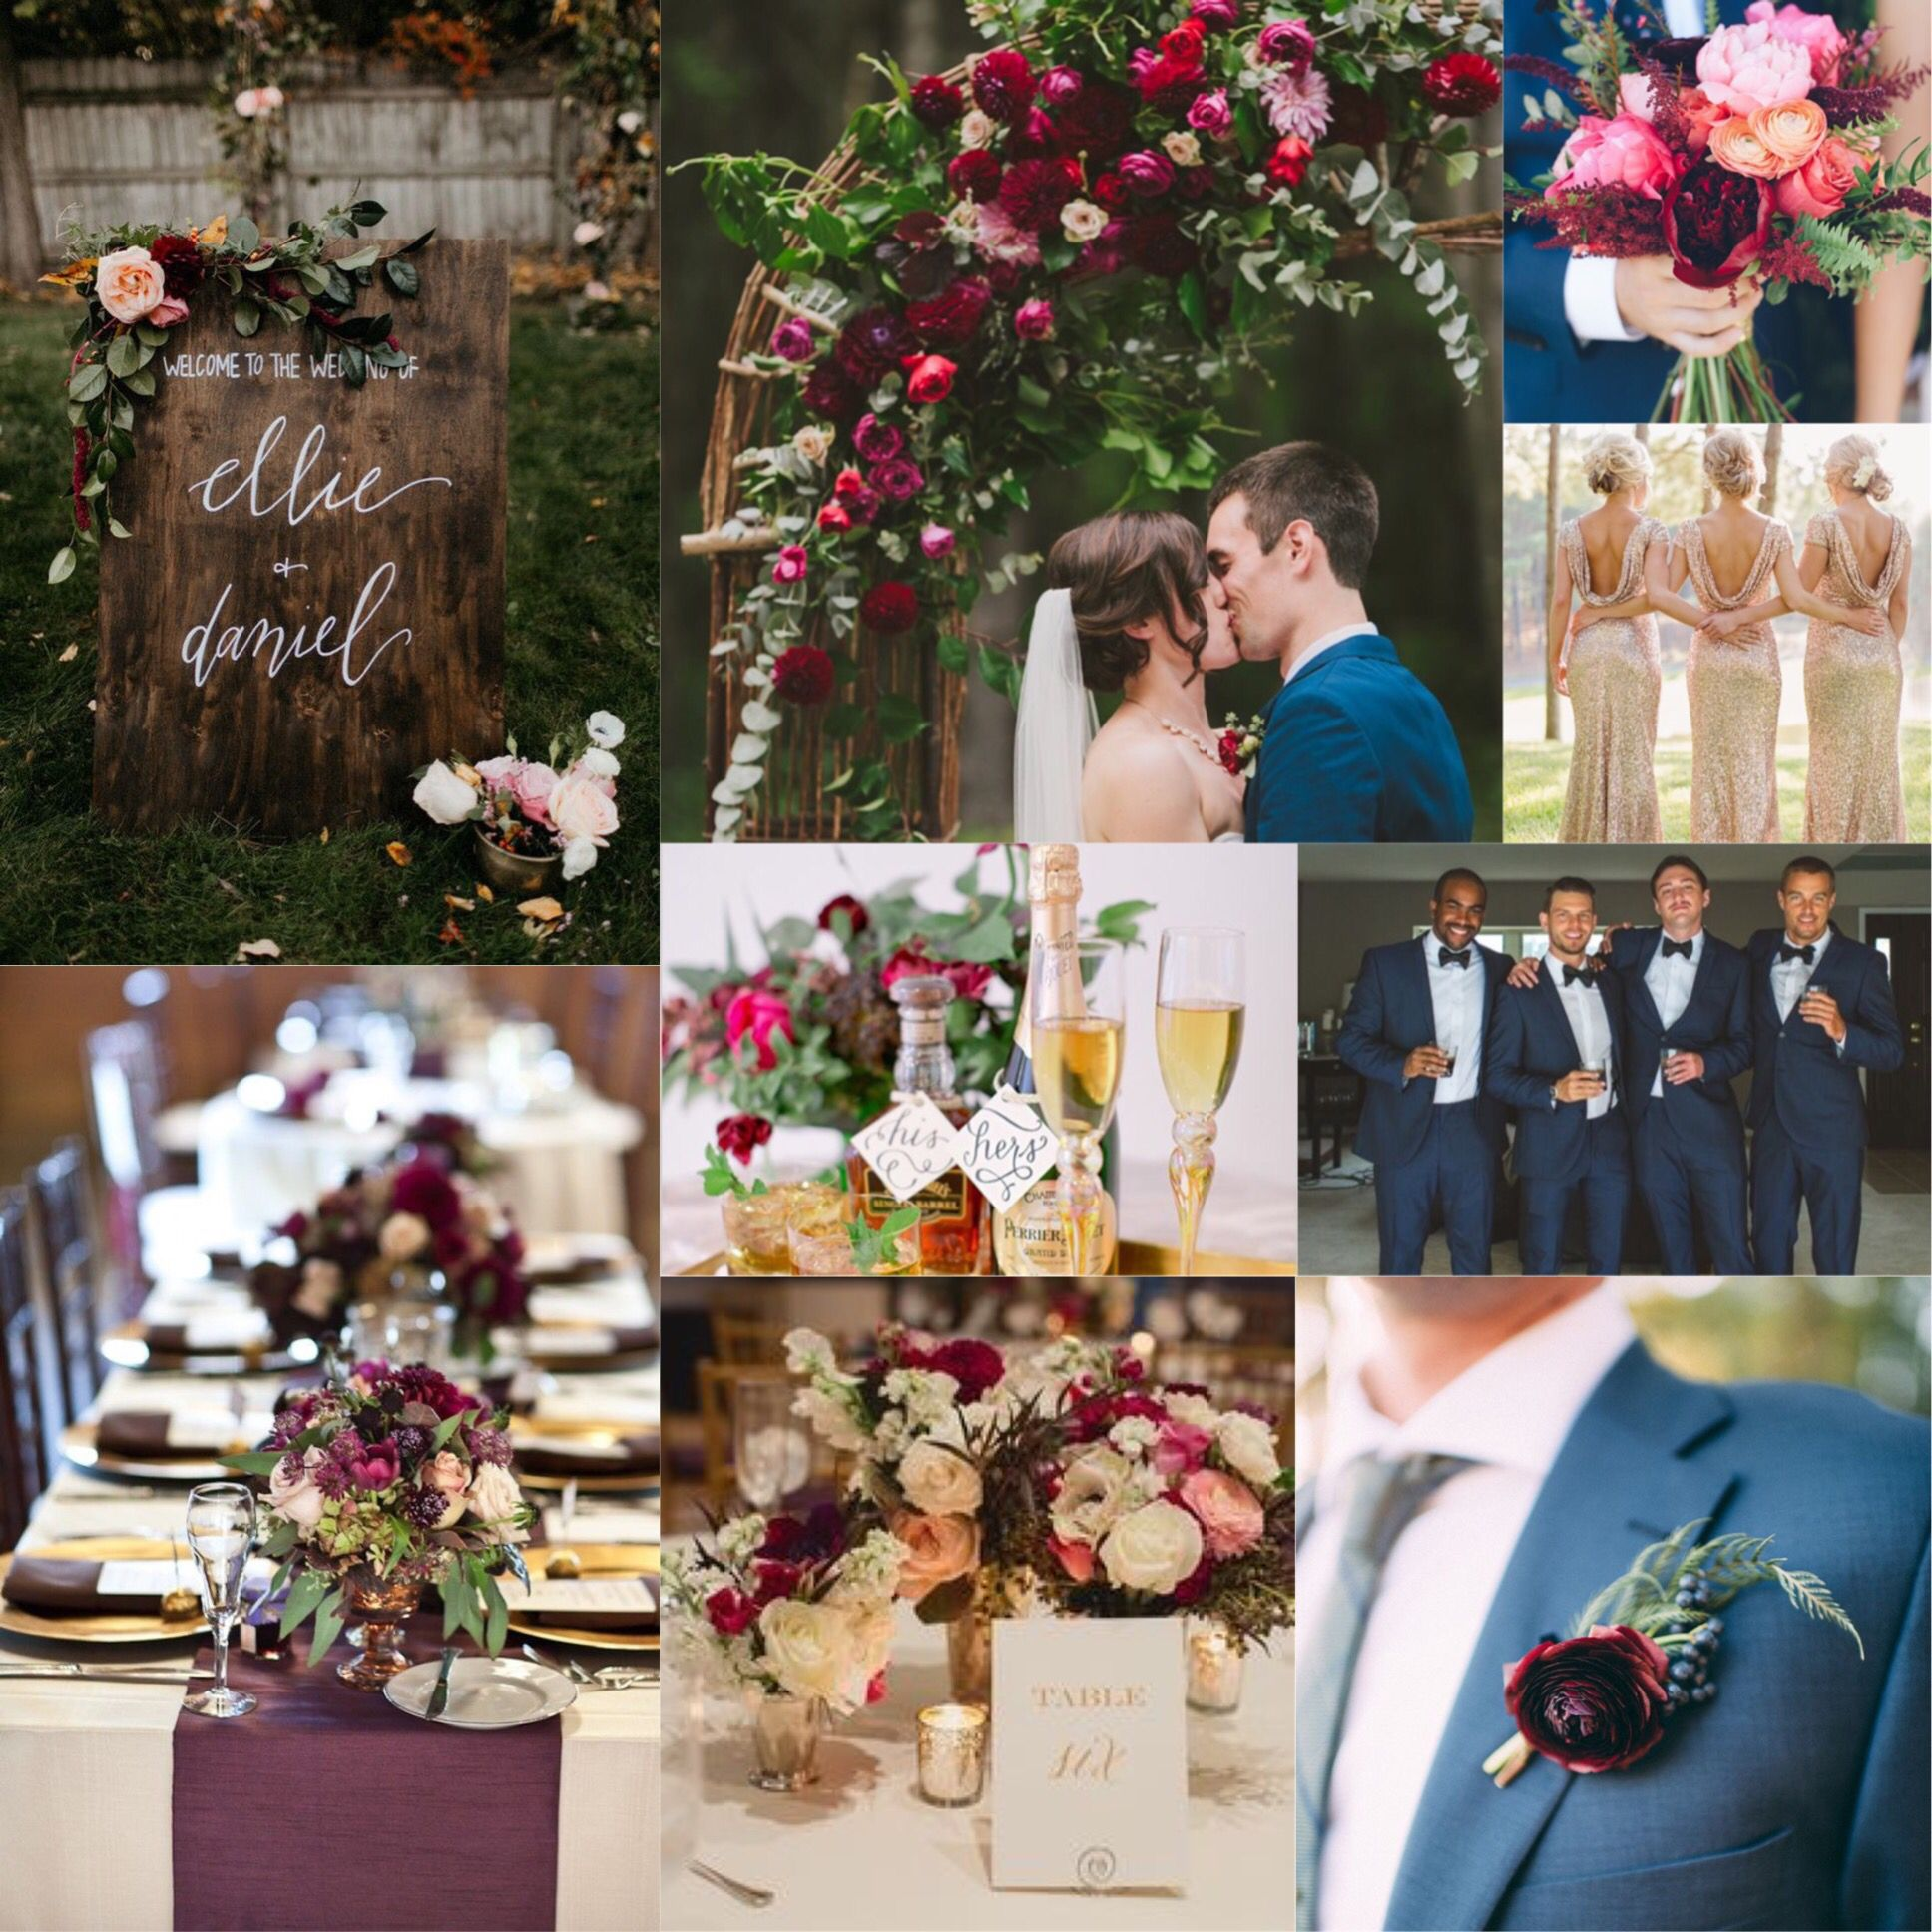 Hochzeit Farben Burgundy Plum Champagne And Navy Wedding Lots Of Greenery